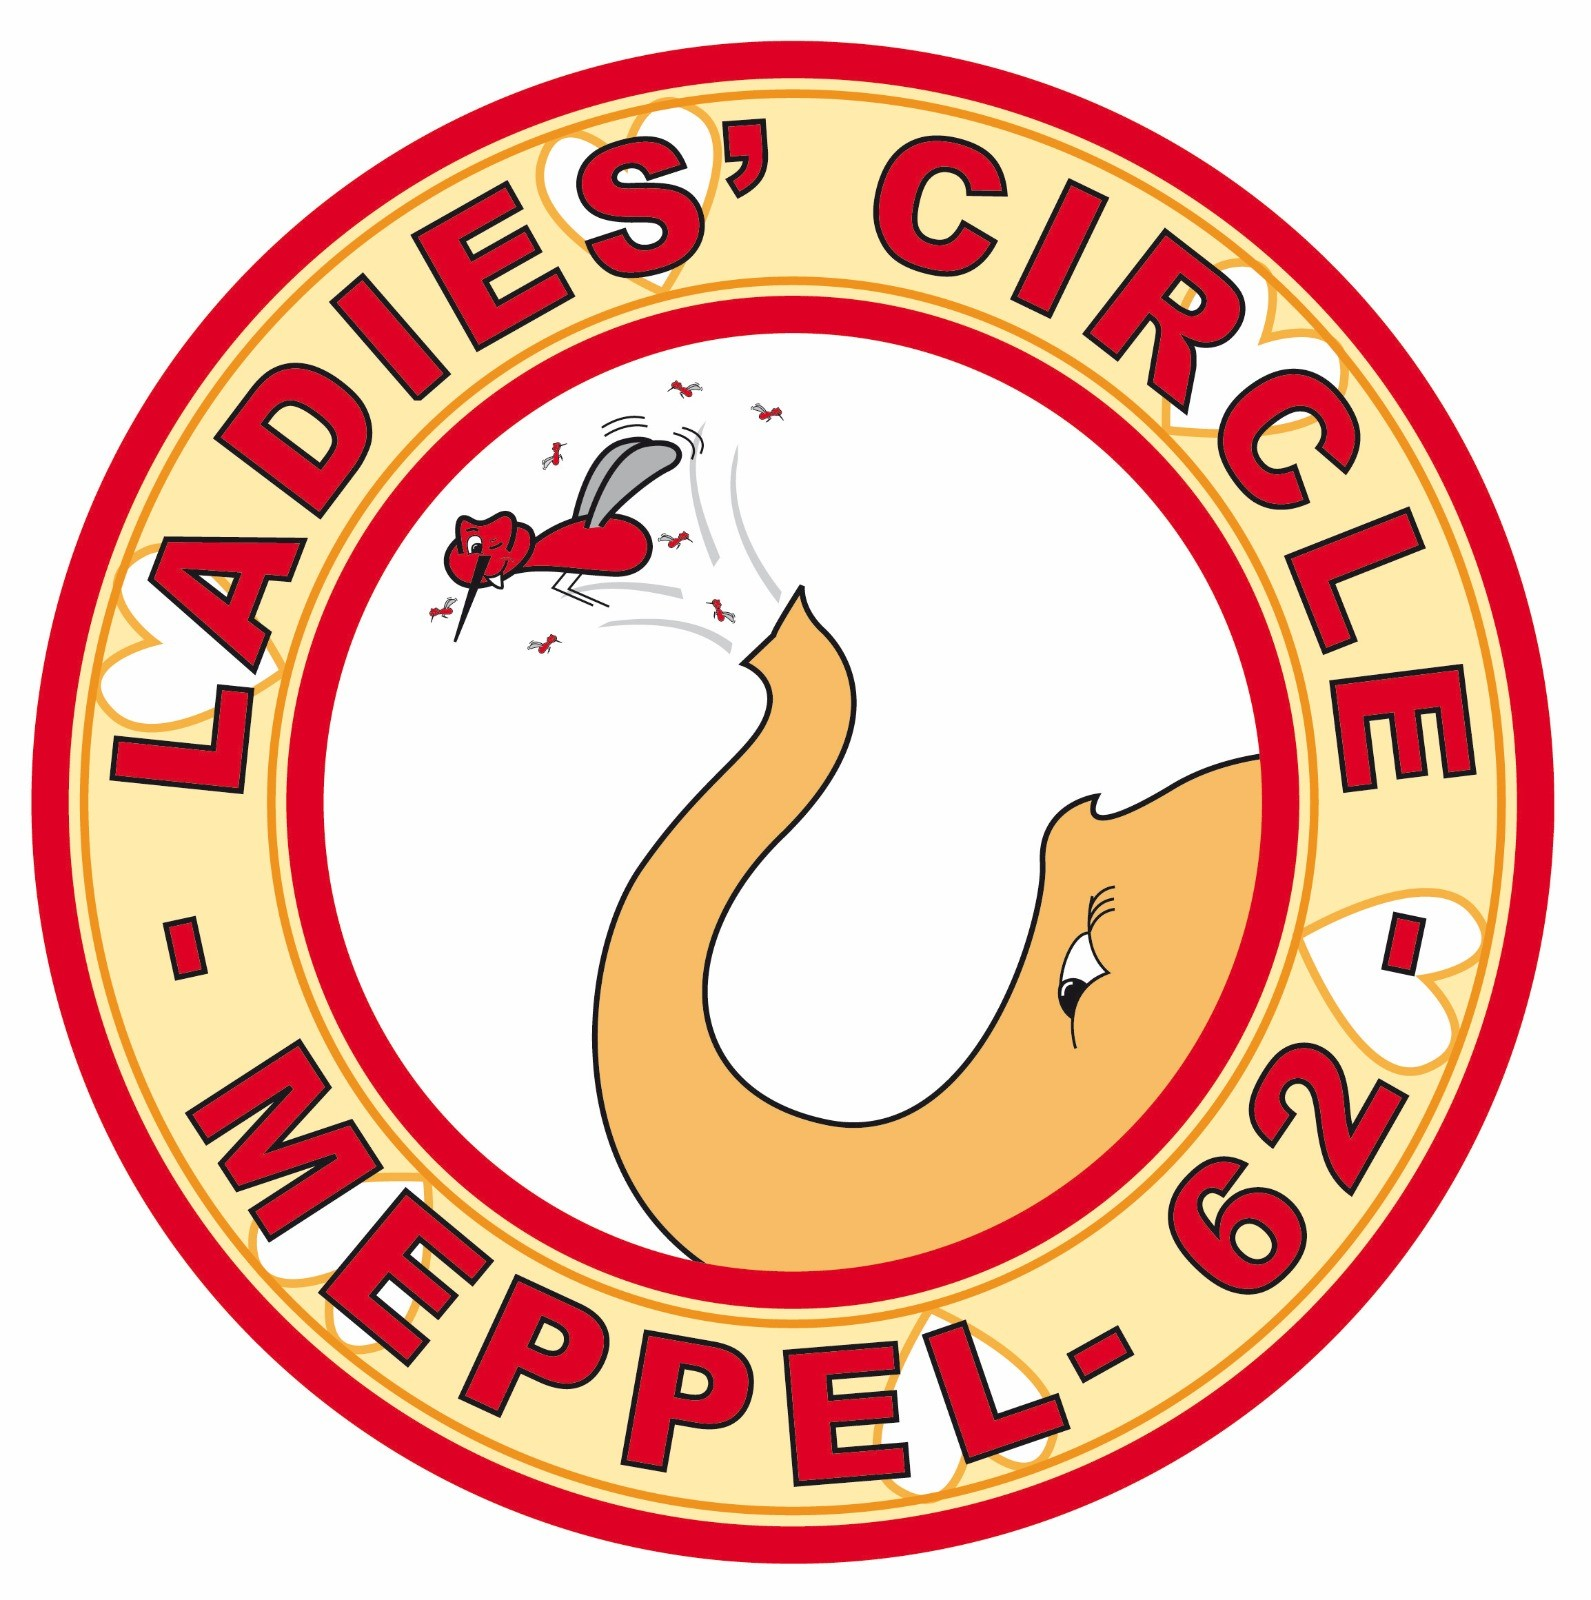 Ladies' Circle- 62 Meppel